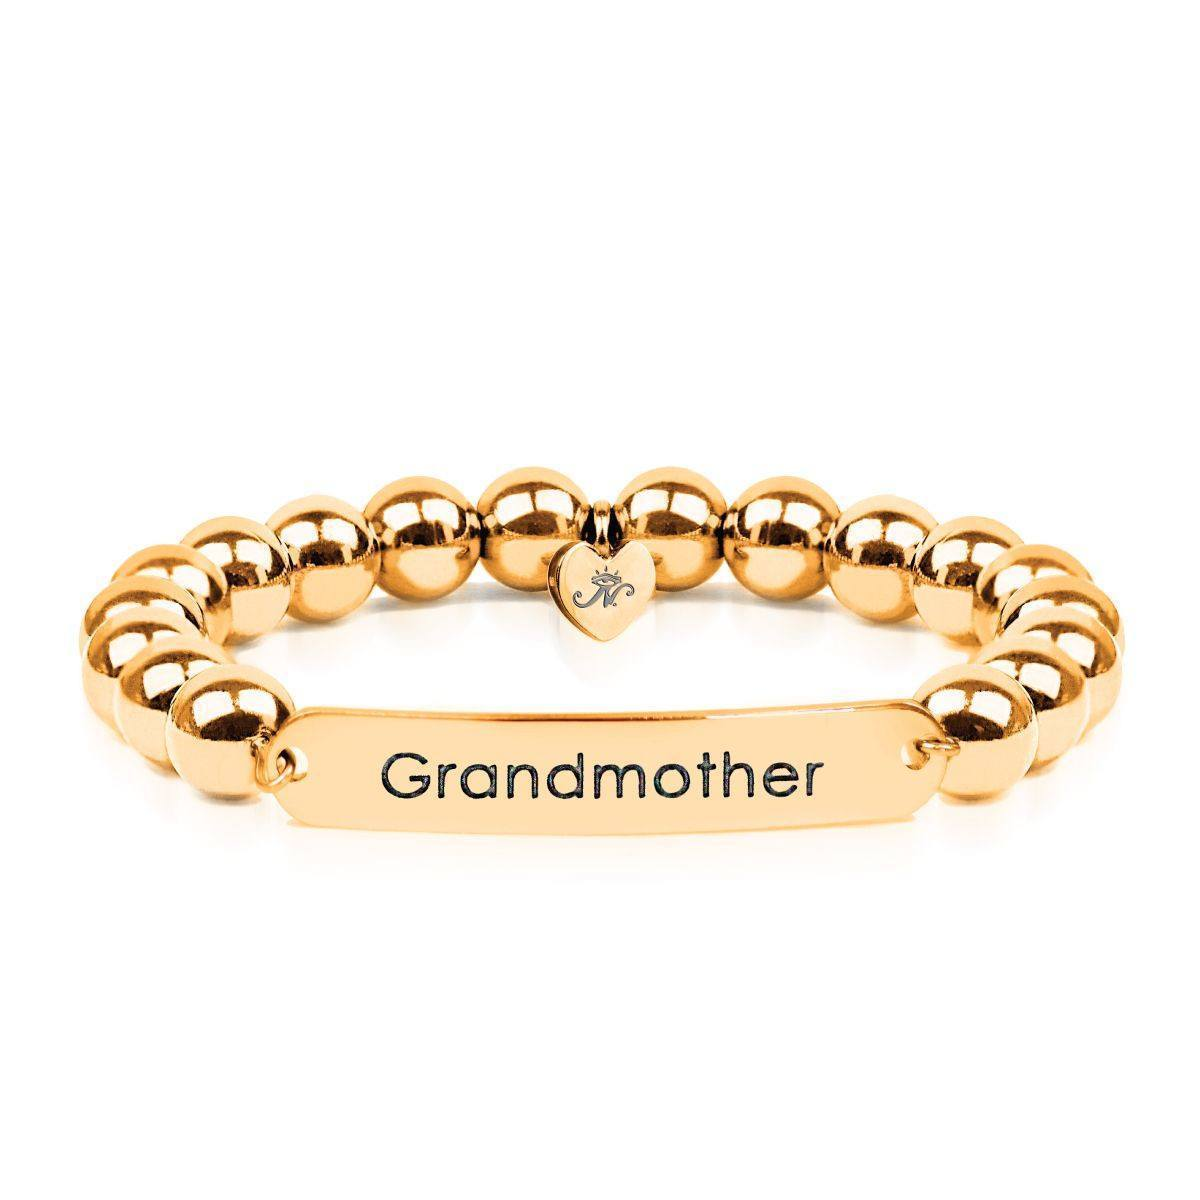 18k Gold | Grandmother | Kindred Spirits Beaded Bracelet